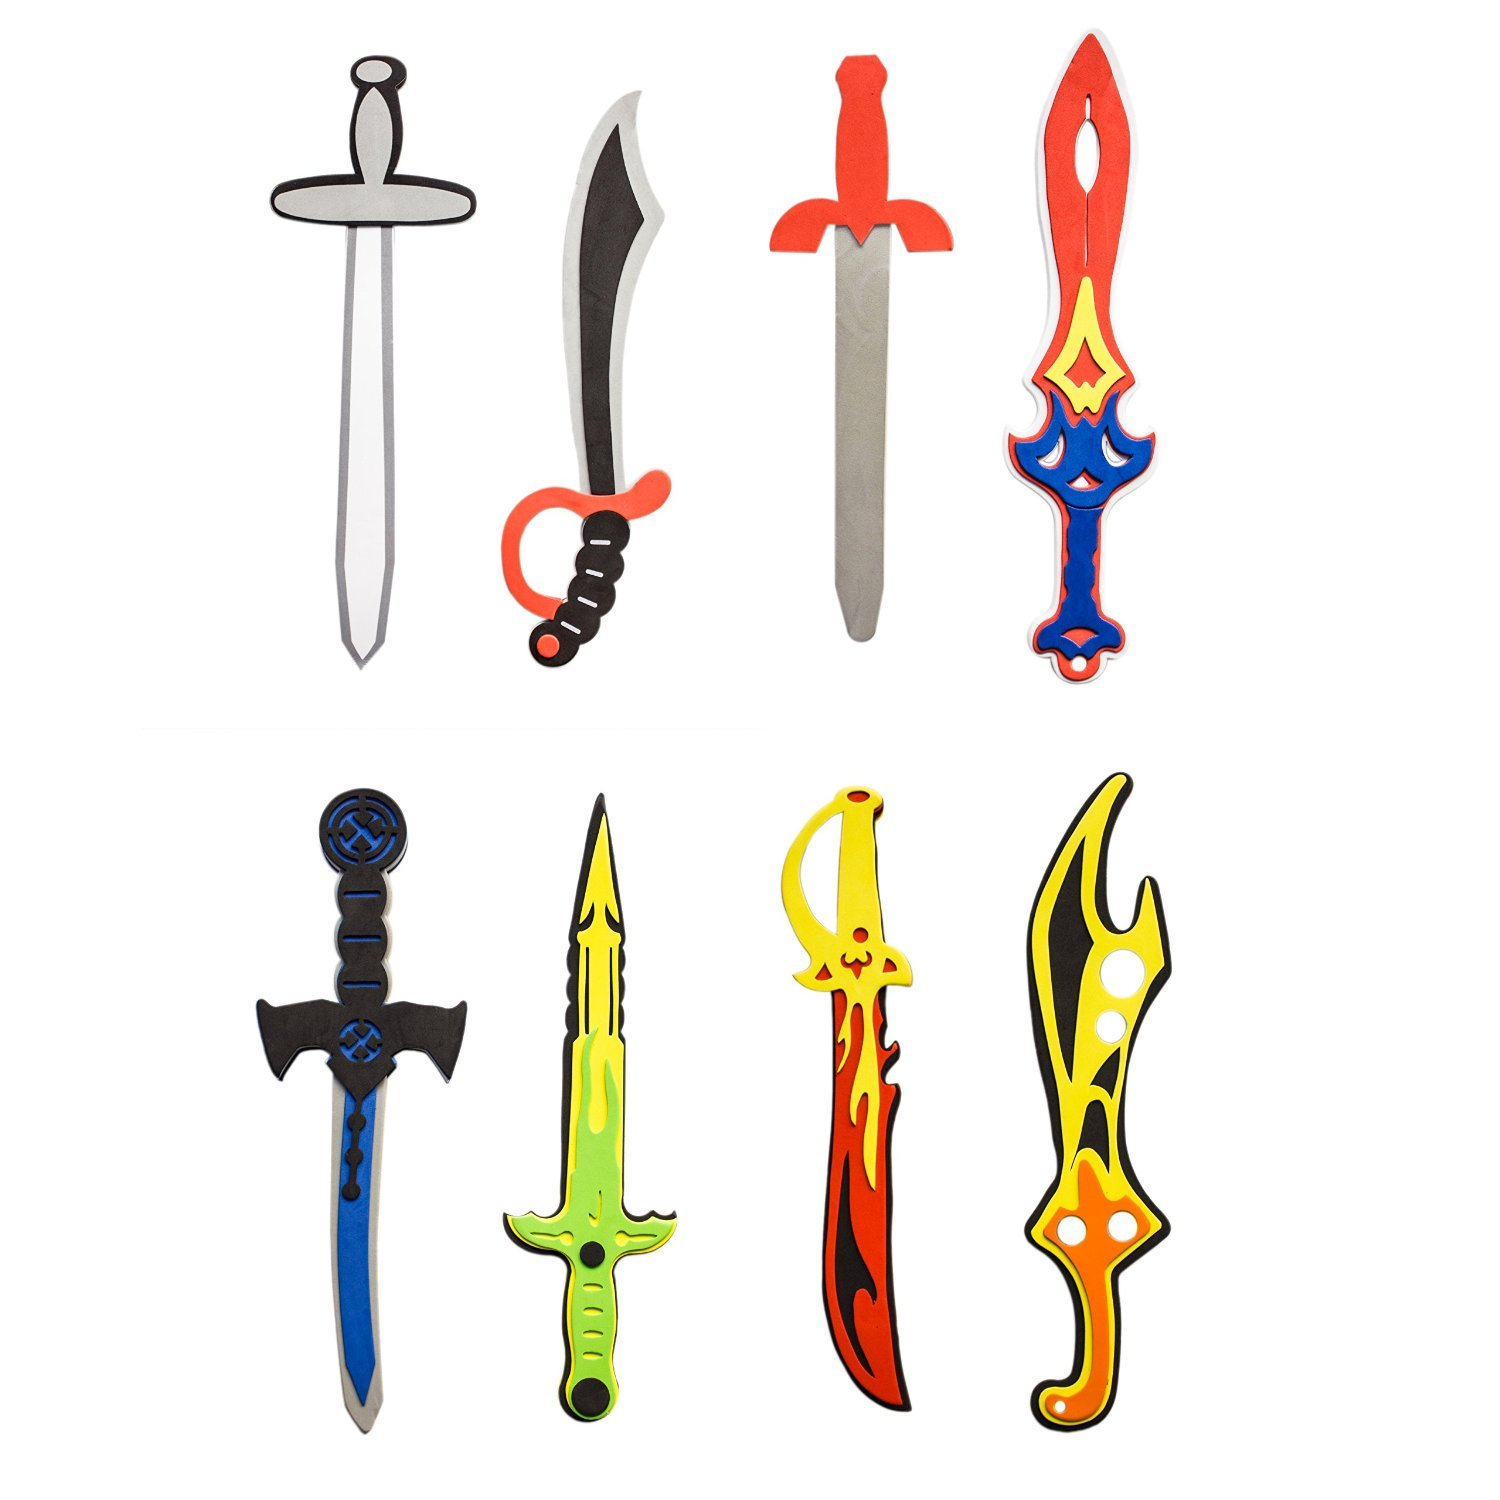 Super Z Outlet Assorted Foam Toy Swords for Children with Different Designs Including Ninja, Pirate, Warrior, and Viking (8 Pack) Super Z Outlet®